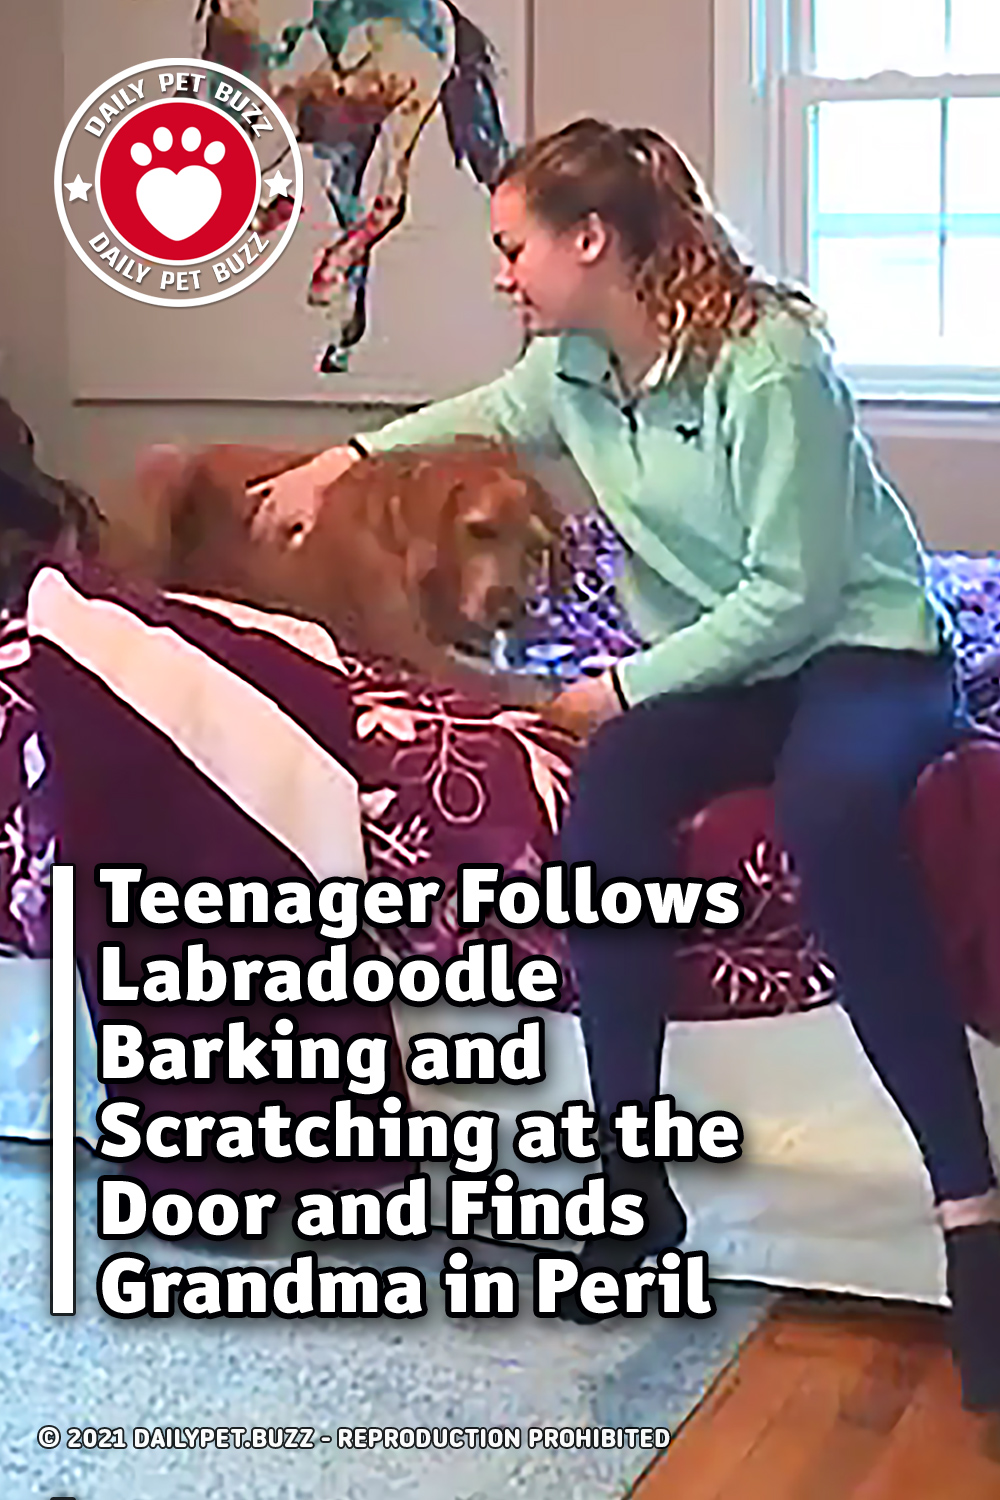 Teenager Follows Labradoodle Barking and Scratching at the Door and Finds Grandma in Peril